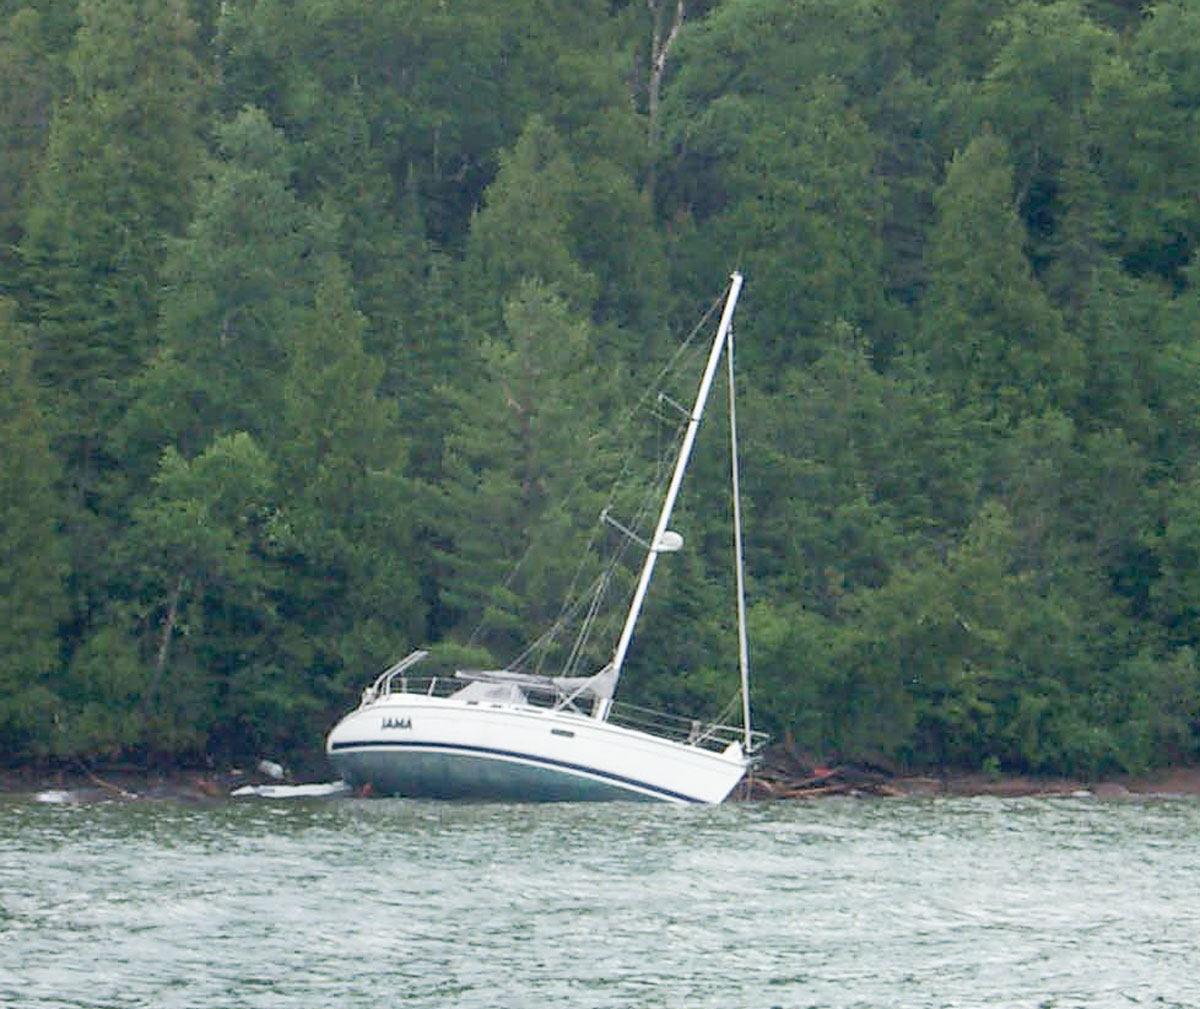 grounded sailboat in the Apostle Islands